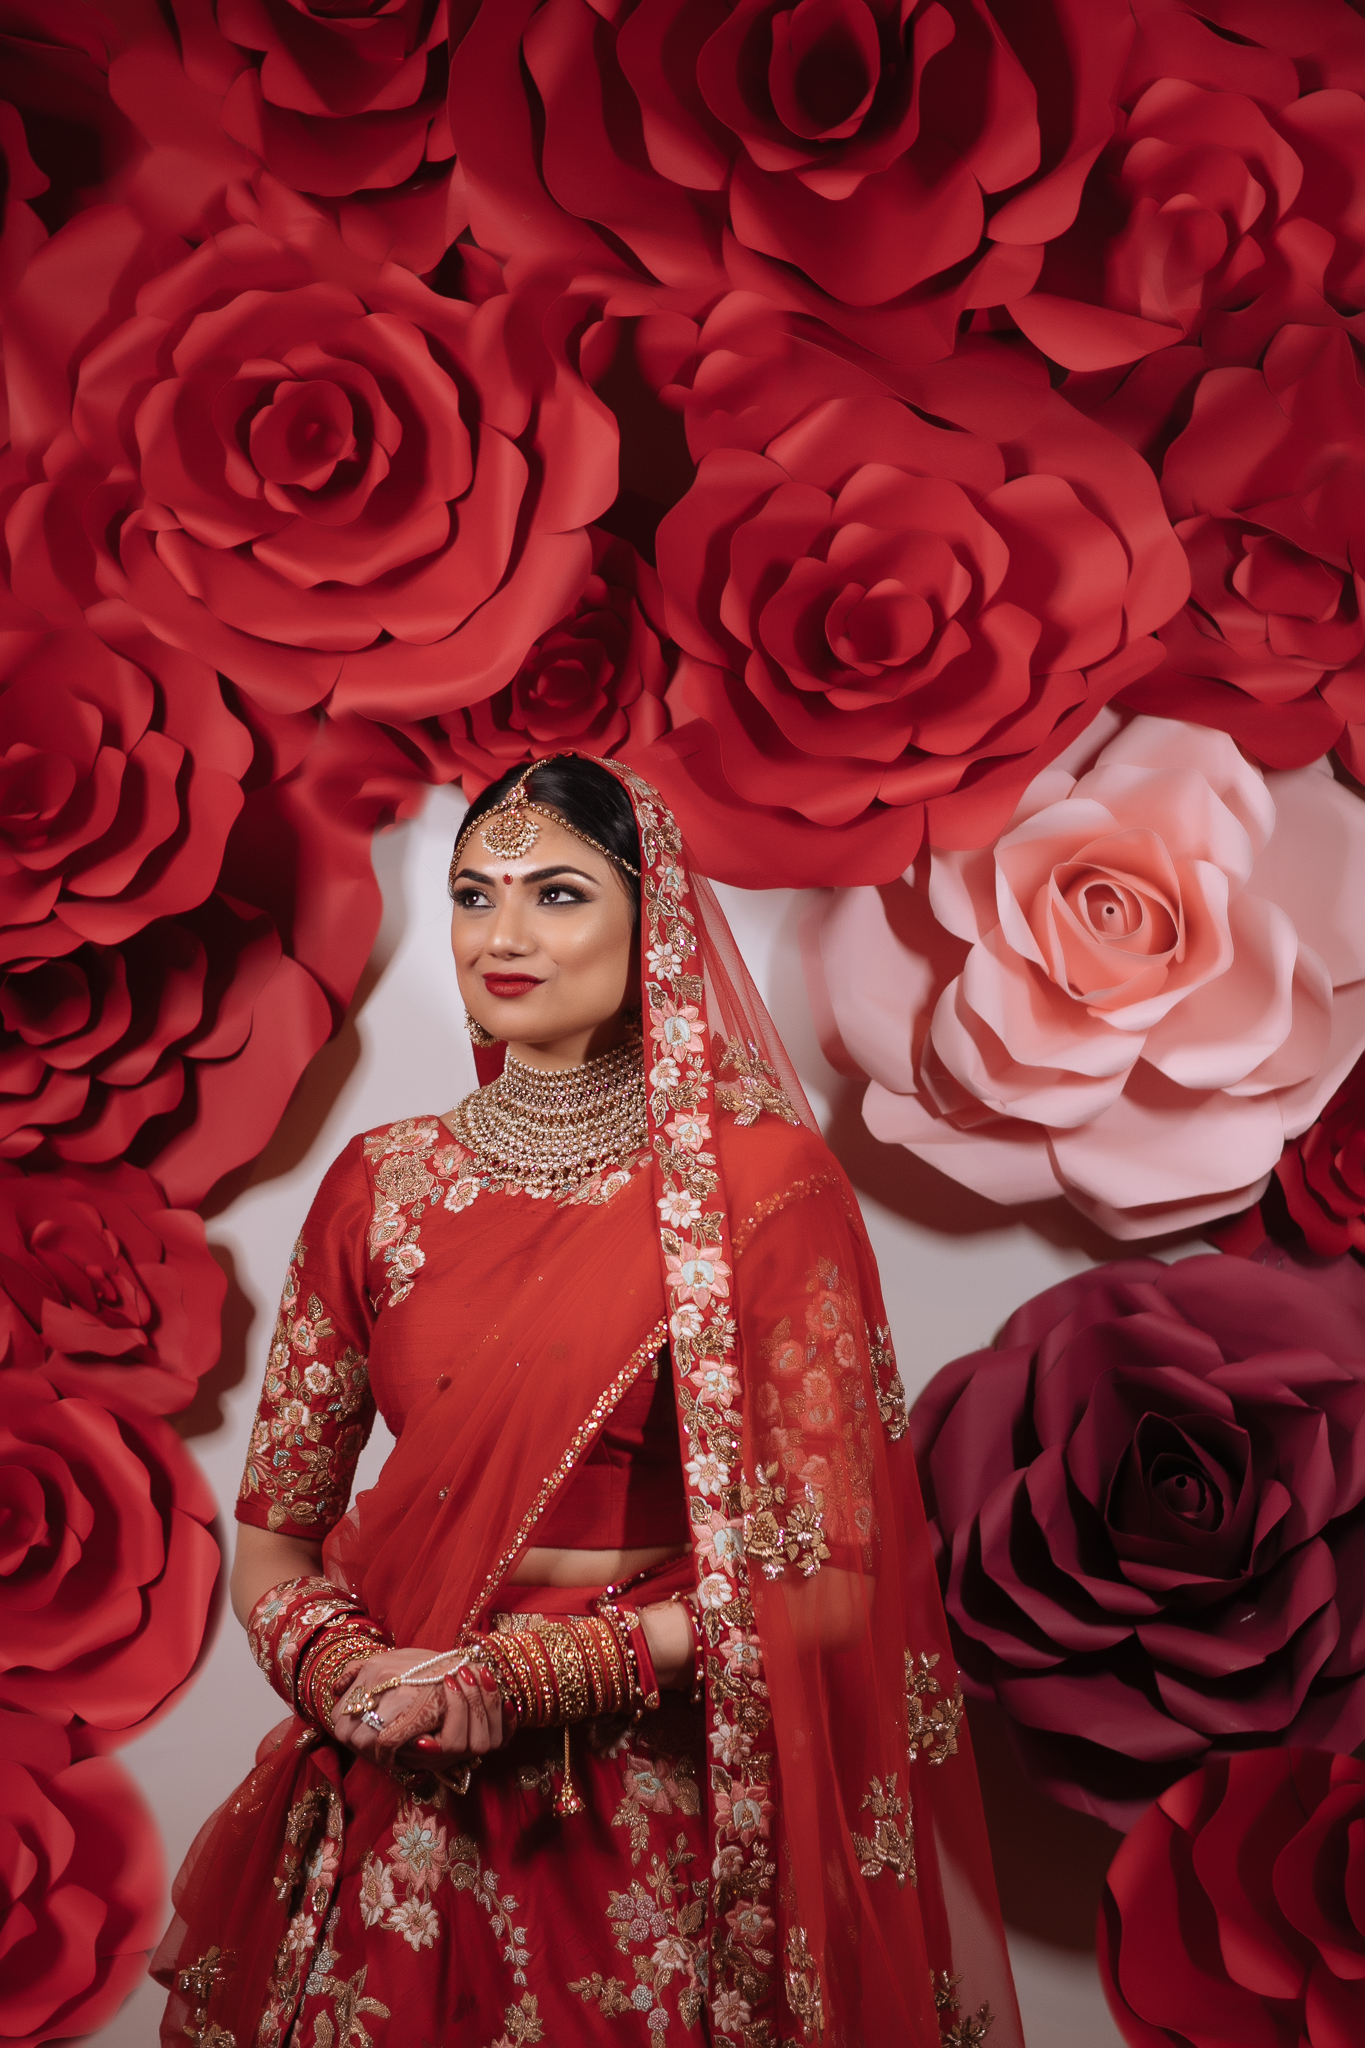 Indian Wedding Photographer London_1.jpg